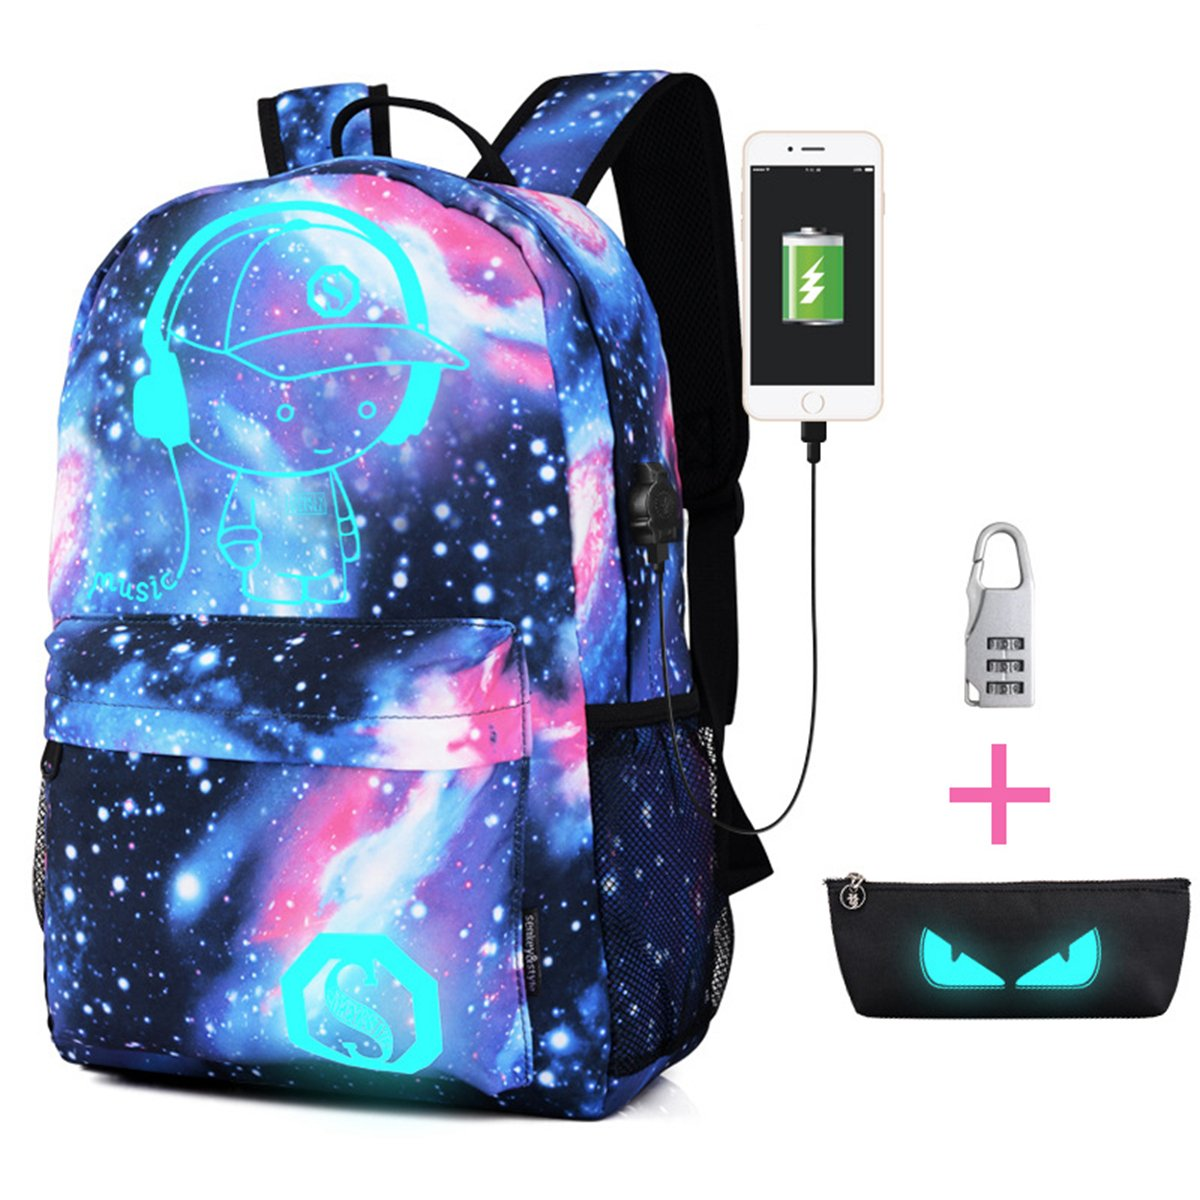 8b341204c999 Amazon.com  FUNOC Student Backpack with USB Charger School Casual Canvas  Galaxy Blue Bag 15L  Clothing